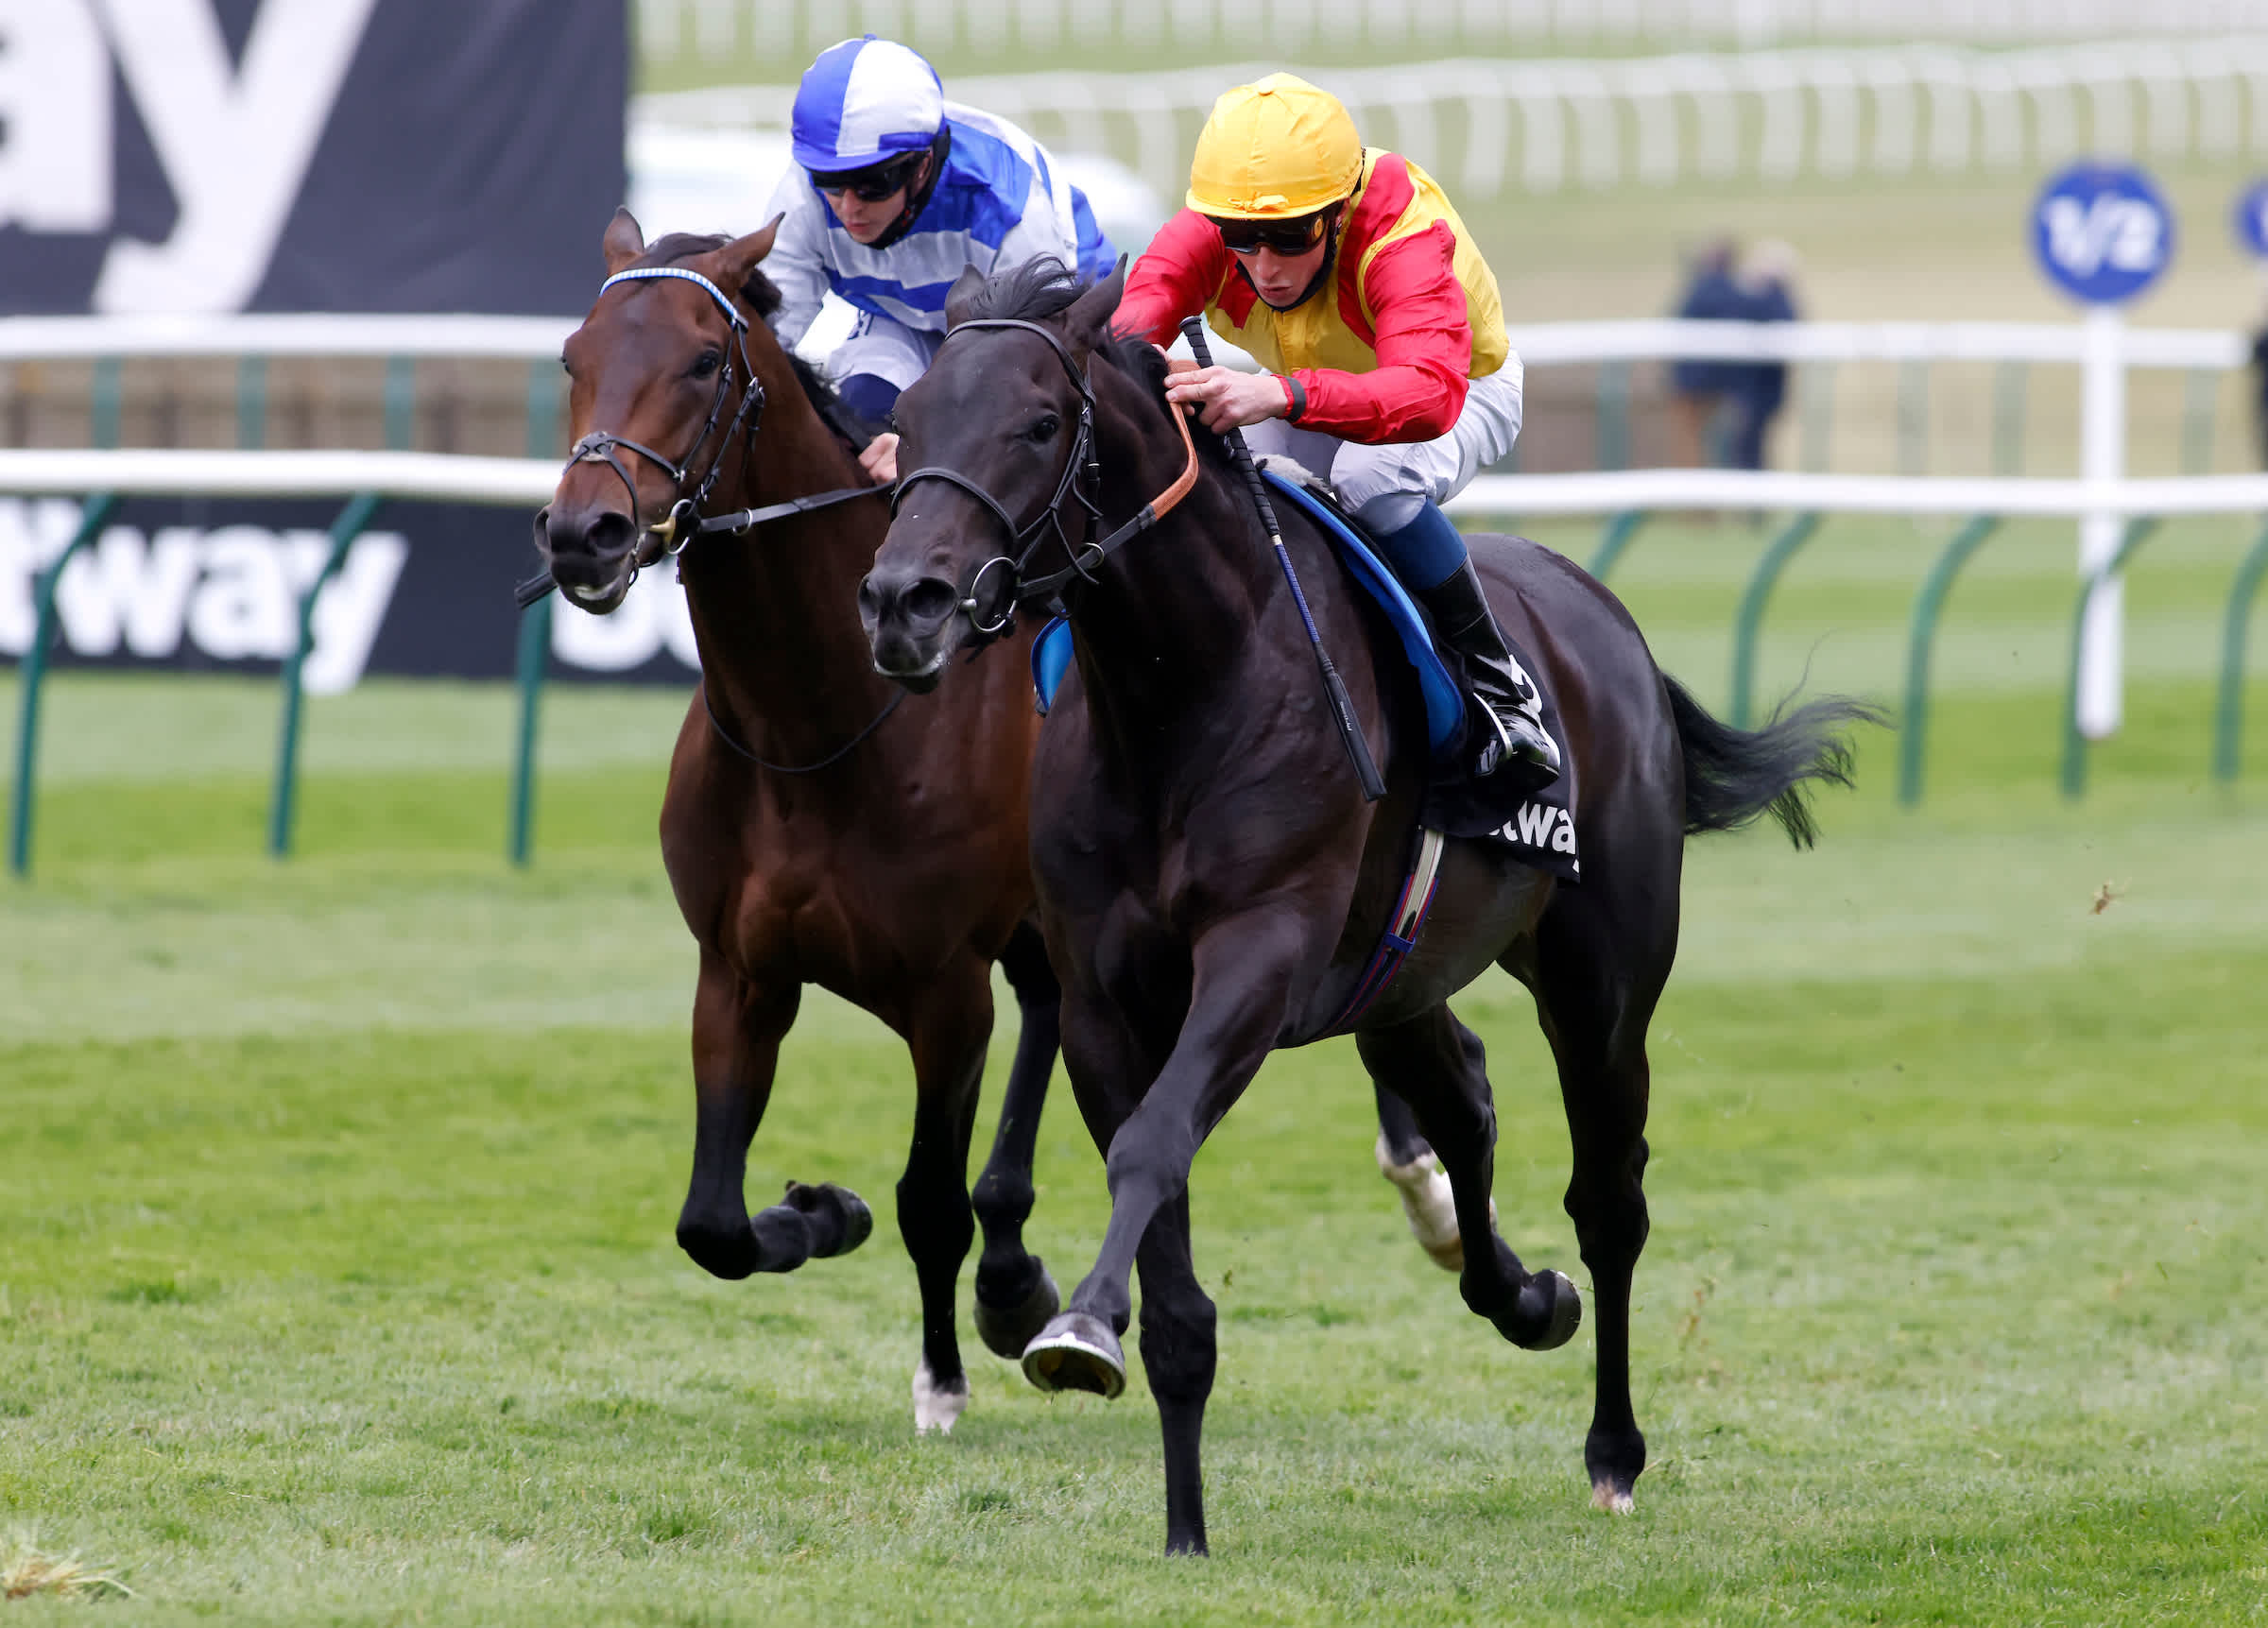 Frankie To Win The Derby